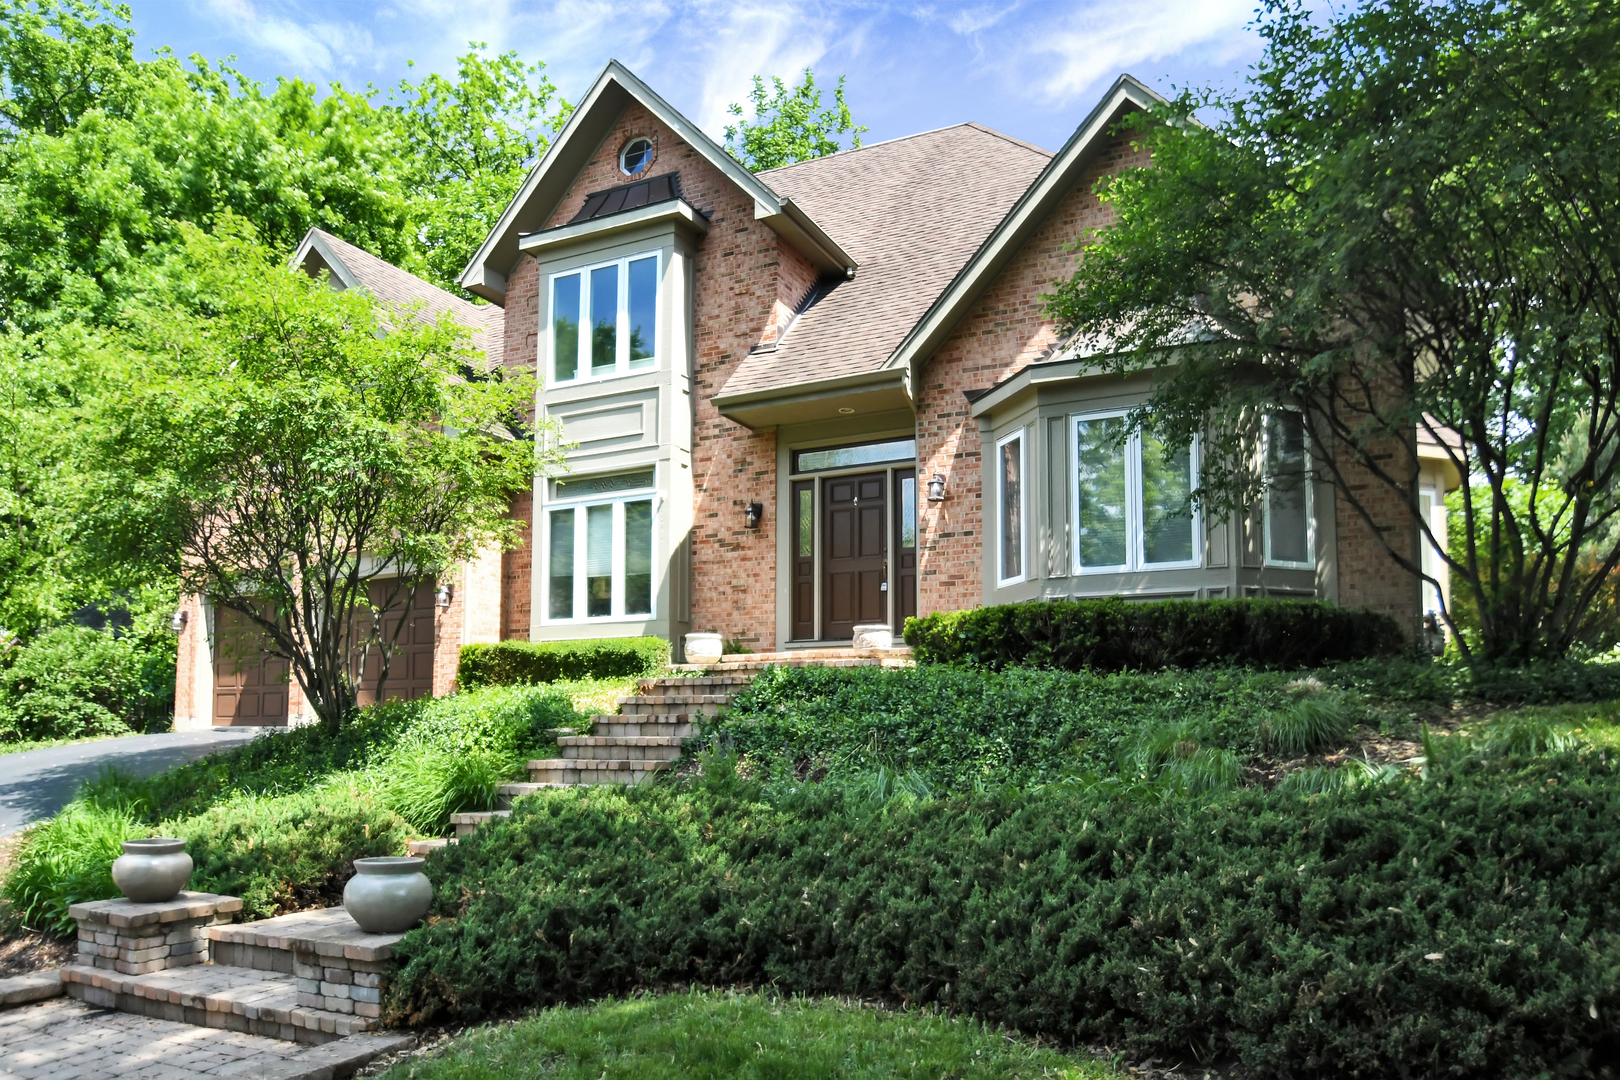 Photo for 102 Creekside Court, St. Charles, IL 60174 (MLS # 10633244)